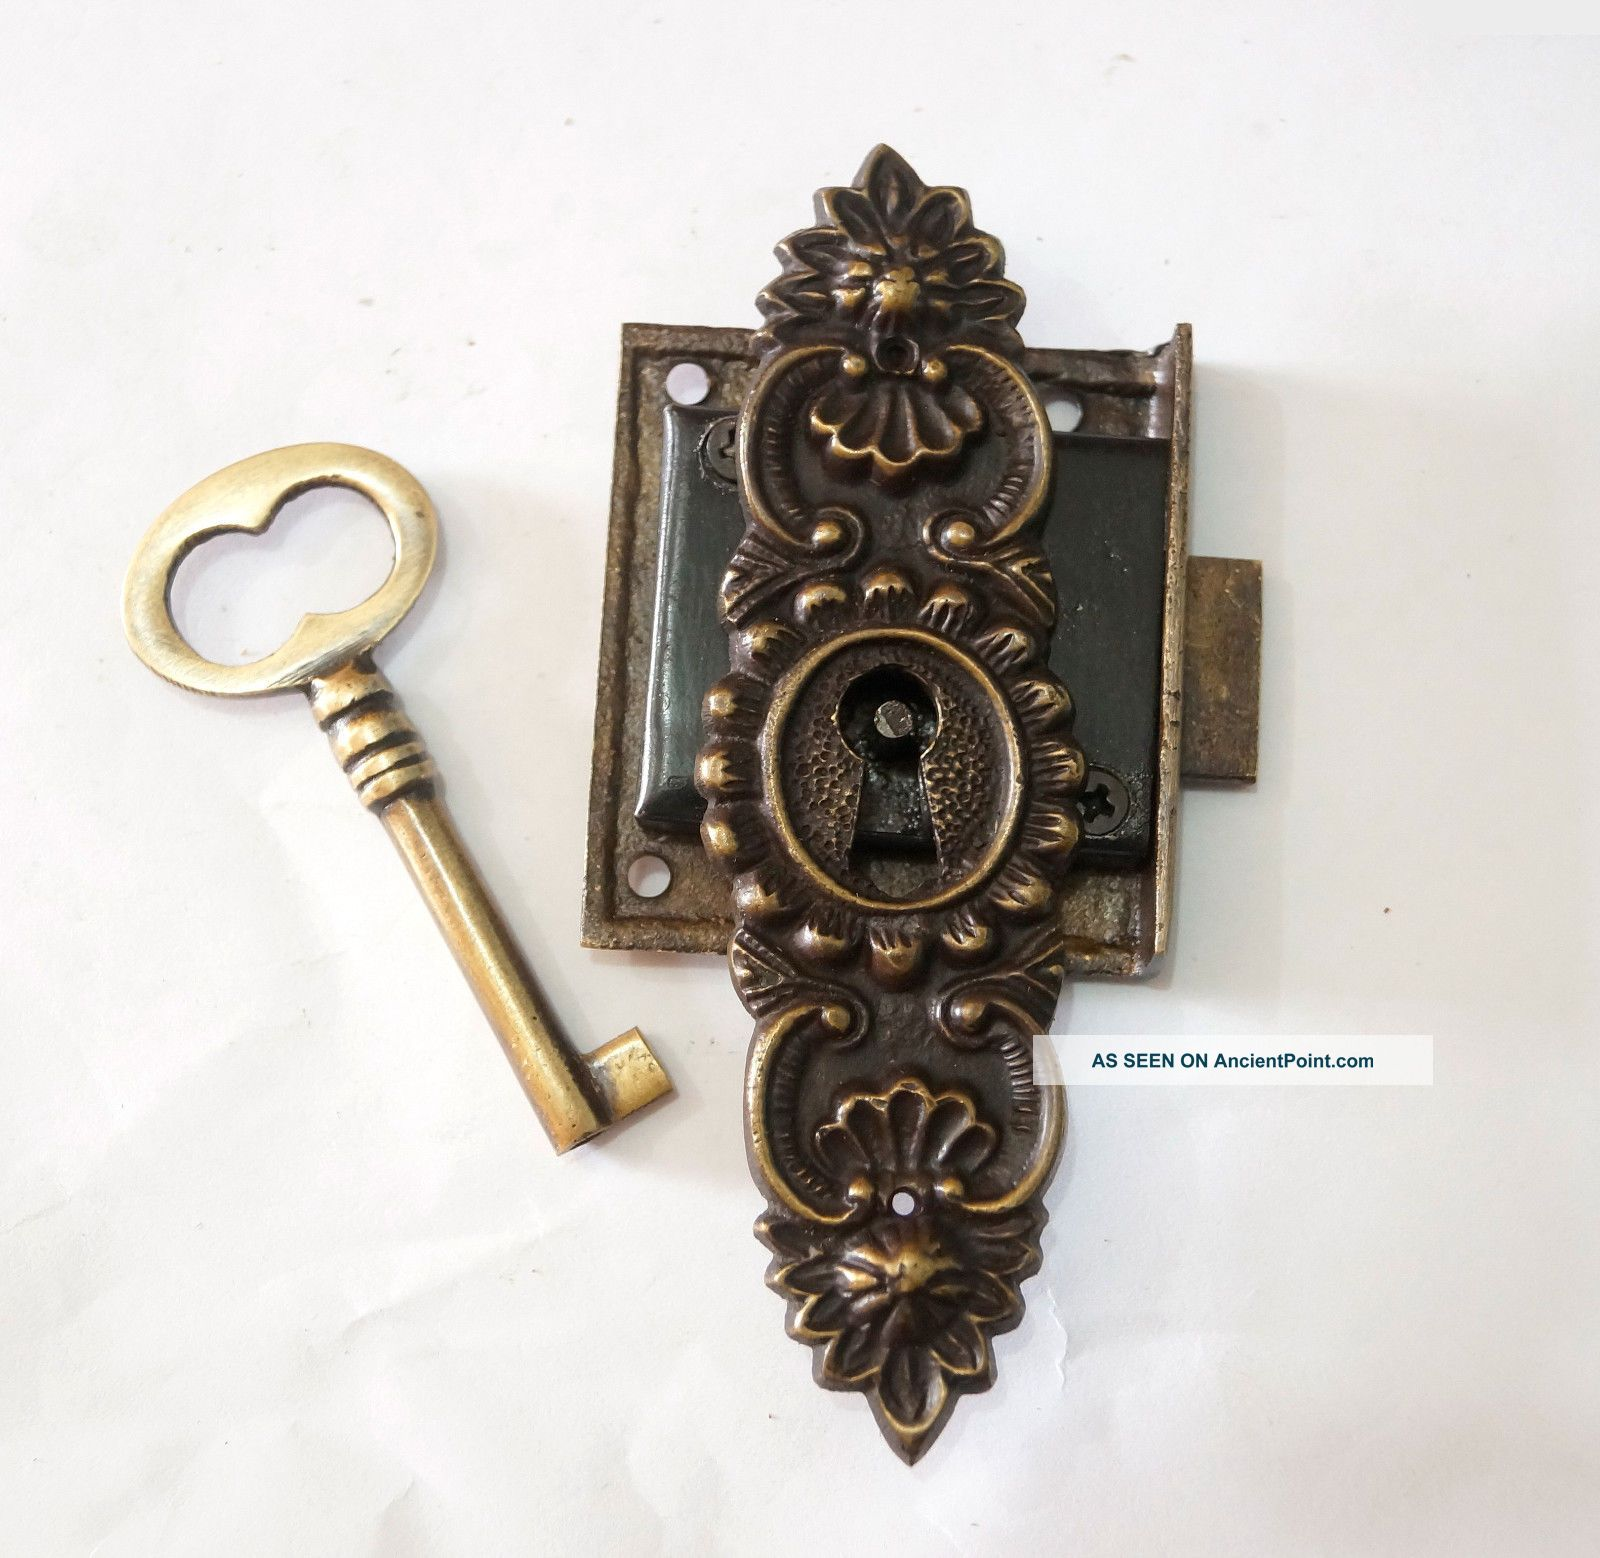 With Antique Key Lock And Antique Lock